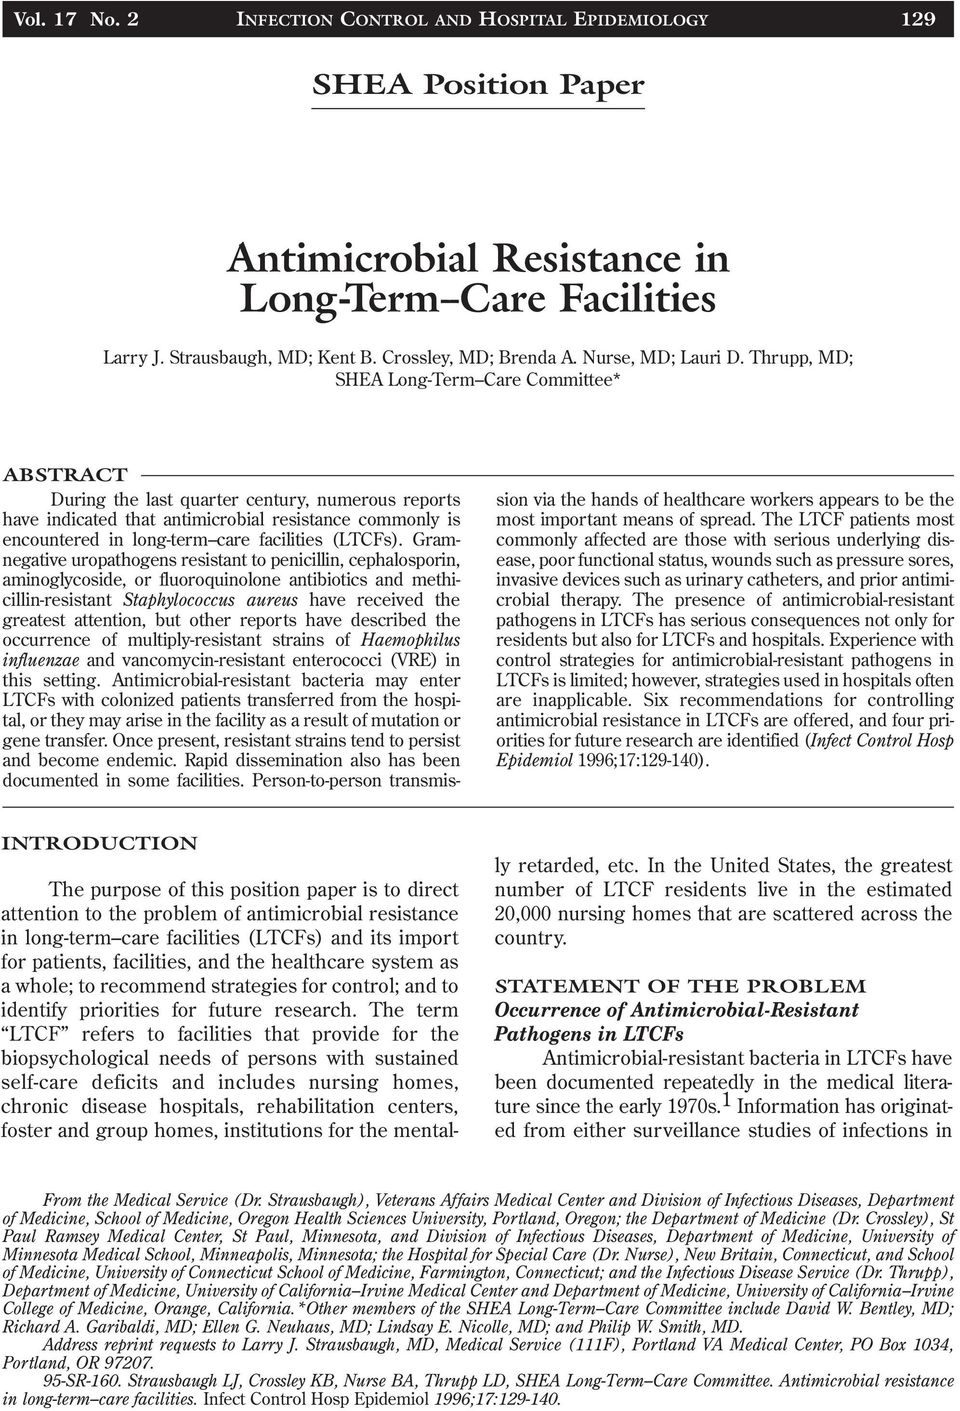 Thrupp, MD; SHEA Long-Term Care Committee* ABSTRACT During the last quarter century, numerous reports have indicated that antimicrobial resistance commonly is encountered in long-term care facilities